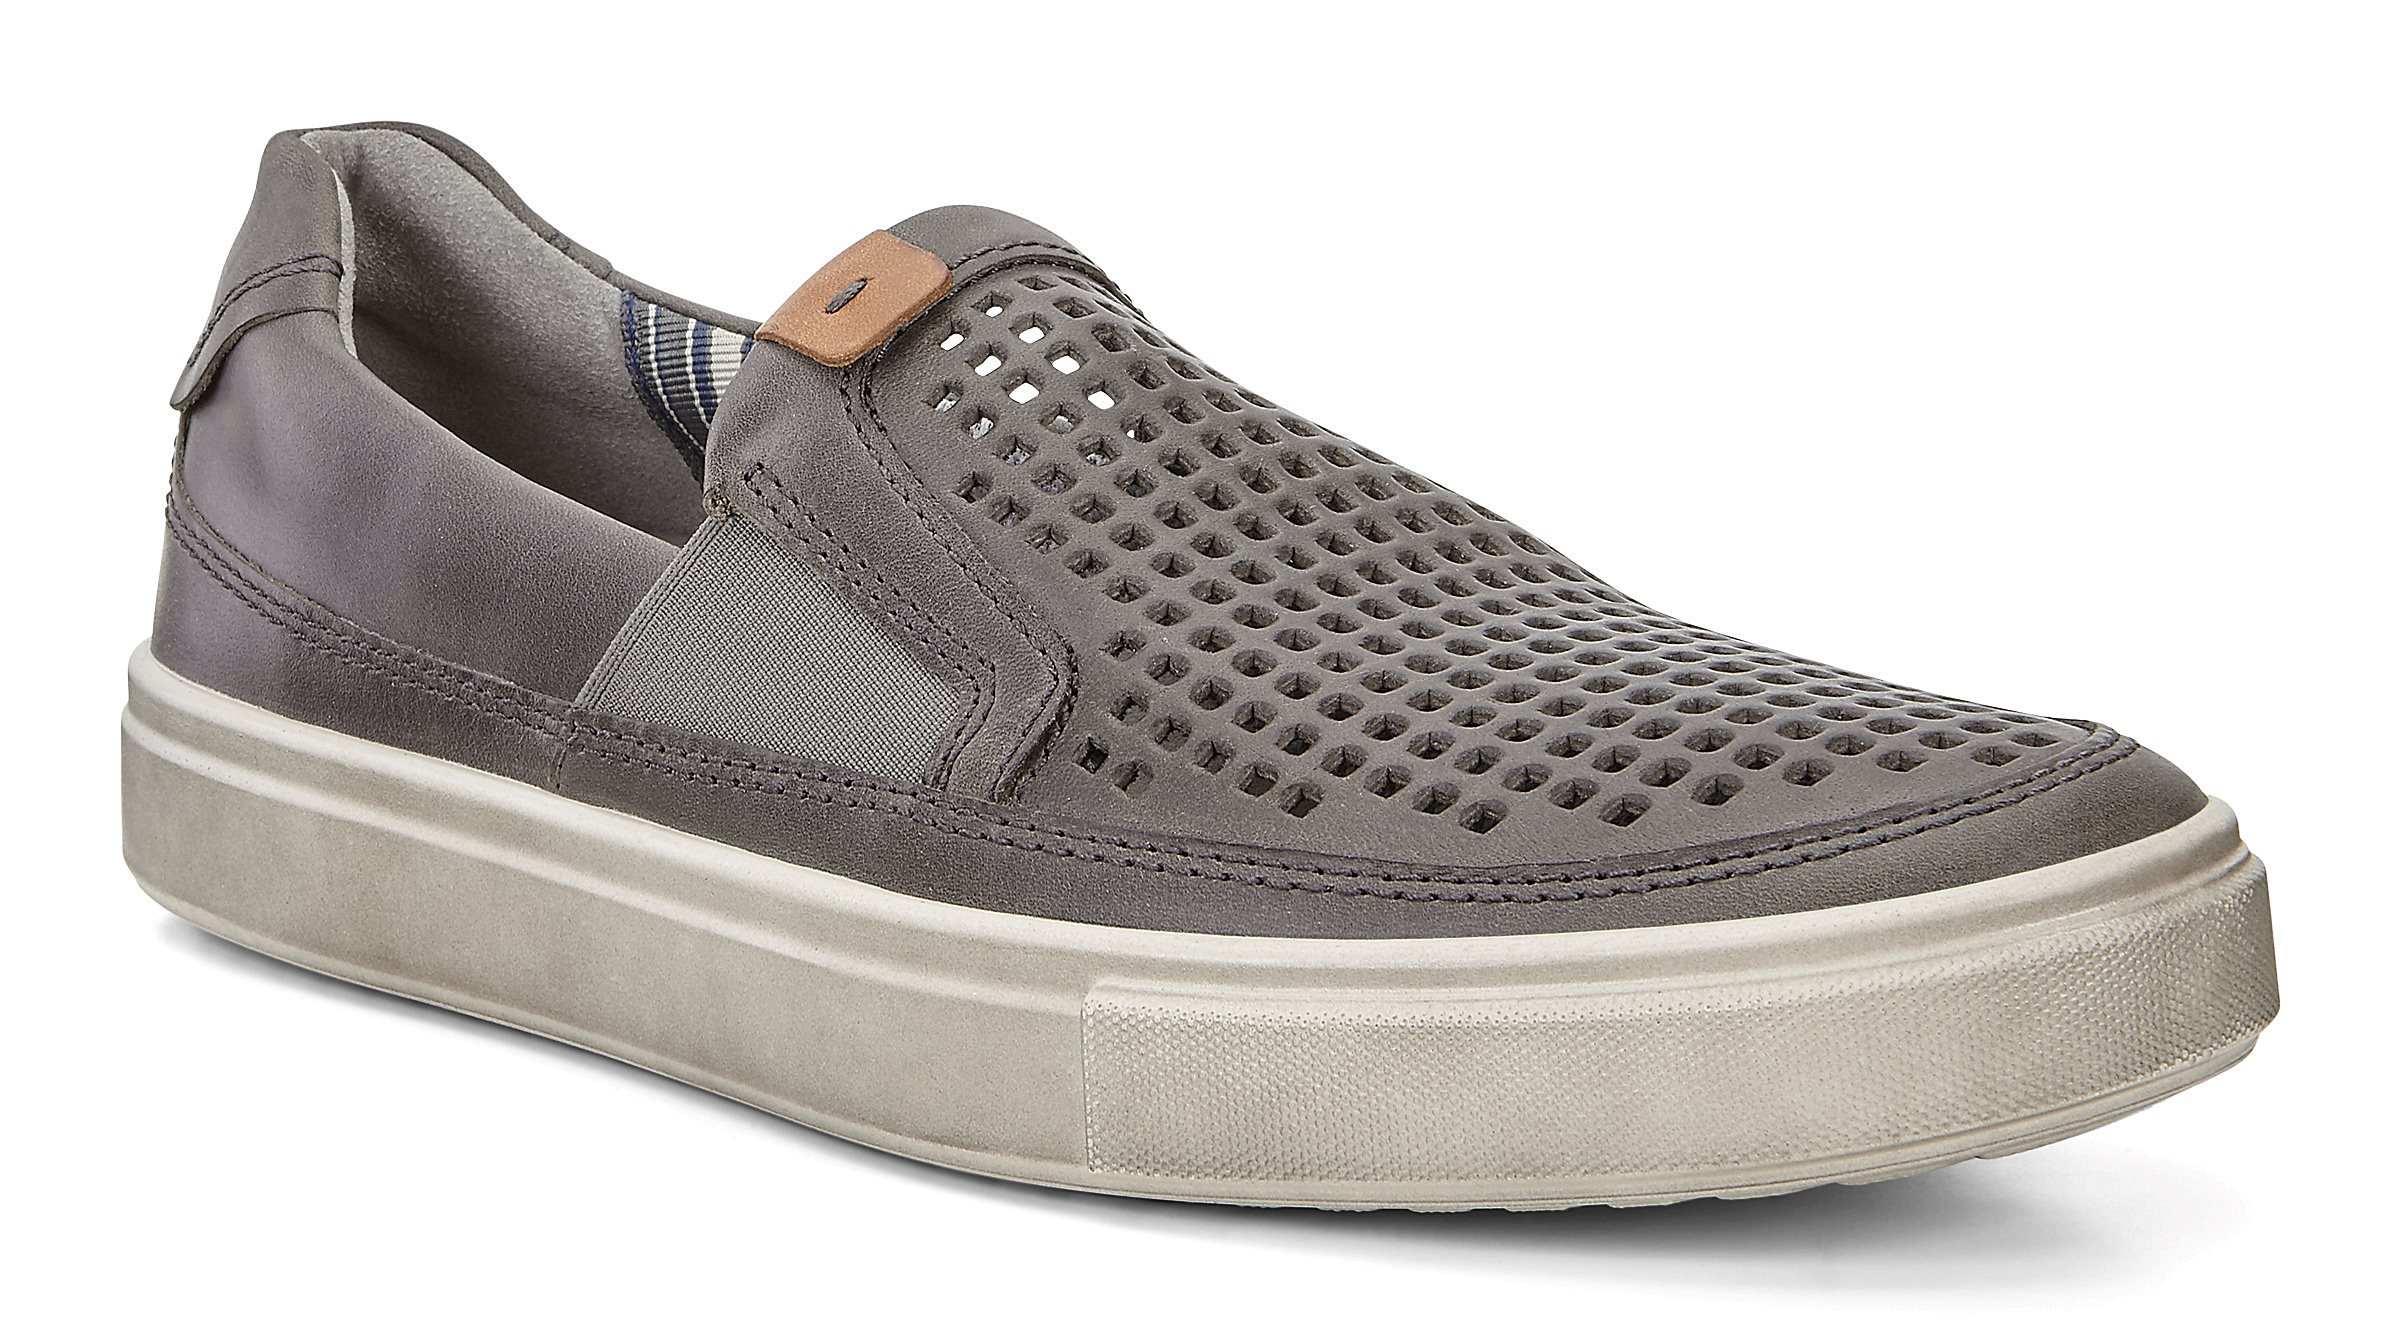 ECCO KYLE | CASUAL | SHOES | MEN | ECCO